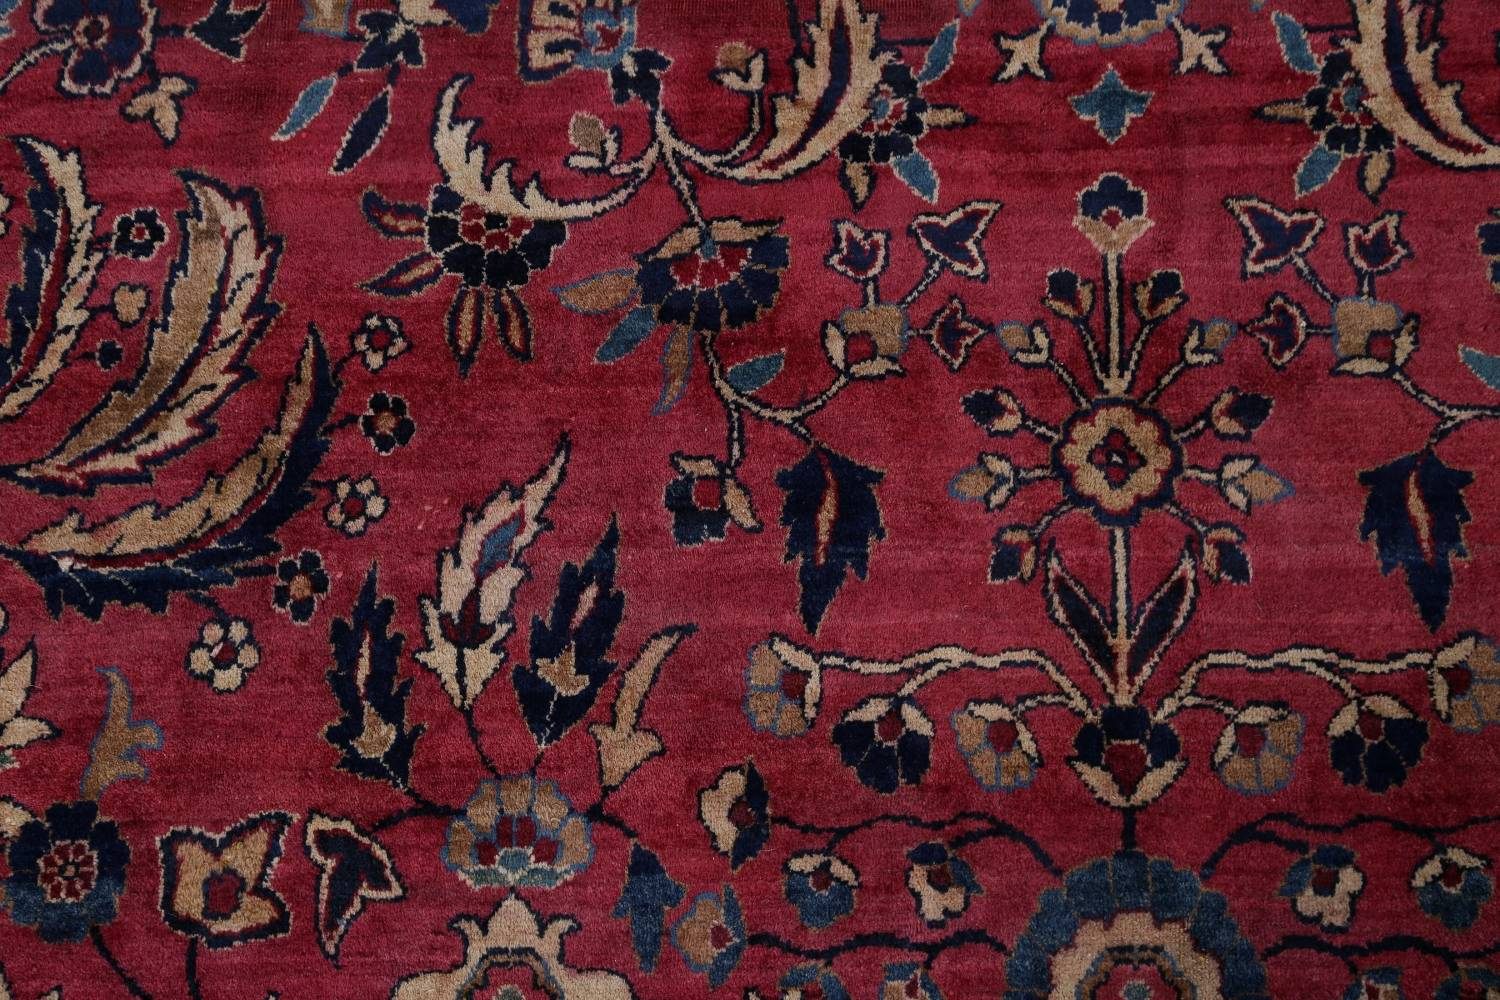 Pre-1900 Antique Floral Sultanabad Persian Hand-Knotted 12x18 Wool Rug image 9